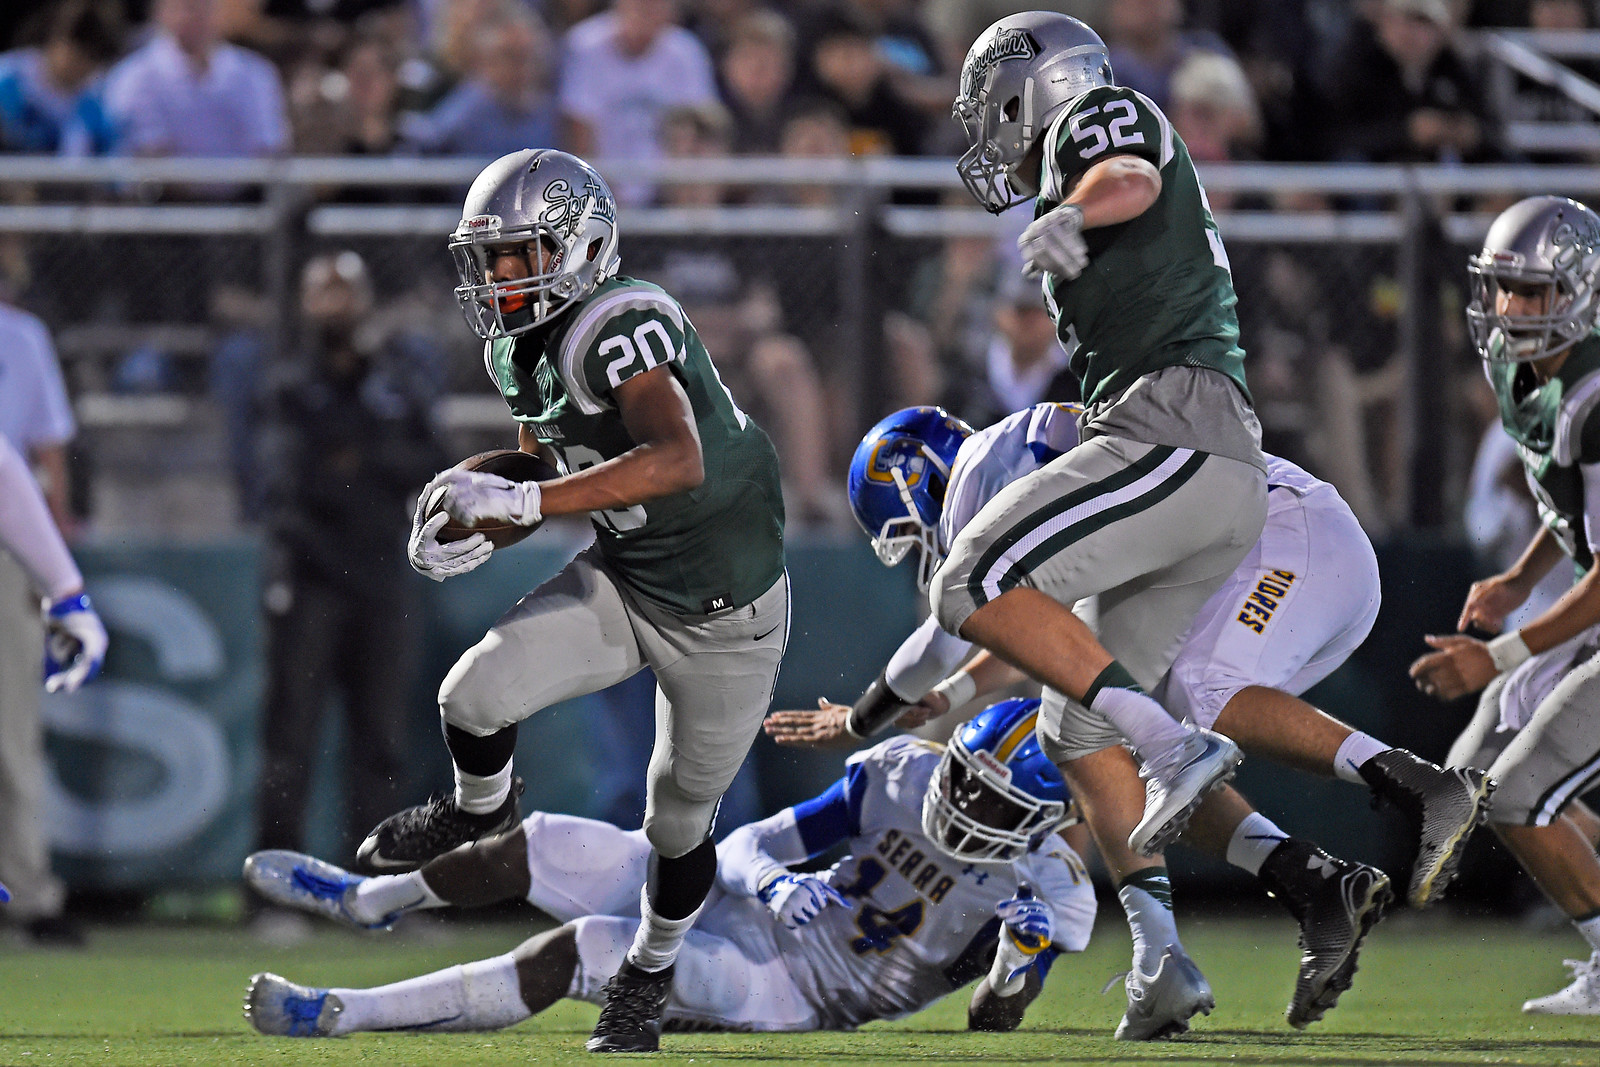 De La Salle's Tre White (20) runs with the ball against Serra in the first quarter of their game at De La Salle High School in Concord, Calif., on Friday, Sept. 2, 2016. (Jose Carlos Fajardo/Bay Area News Group)